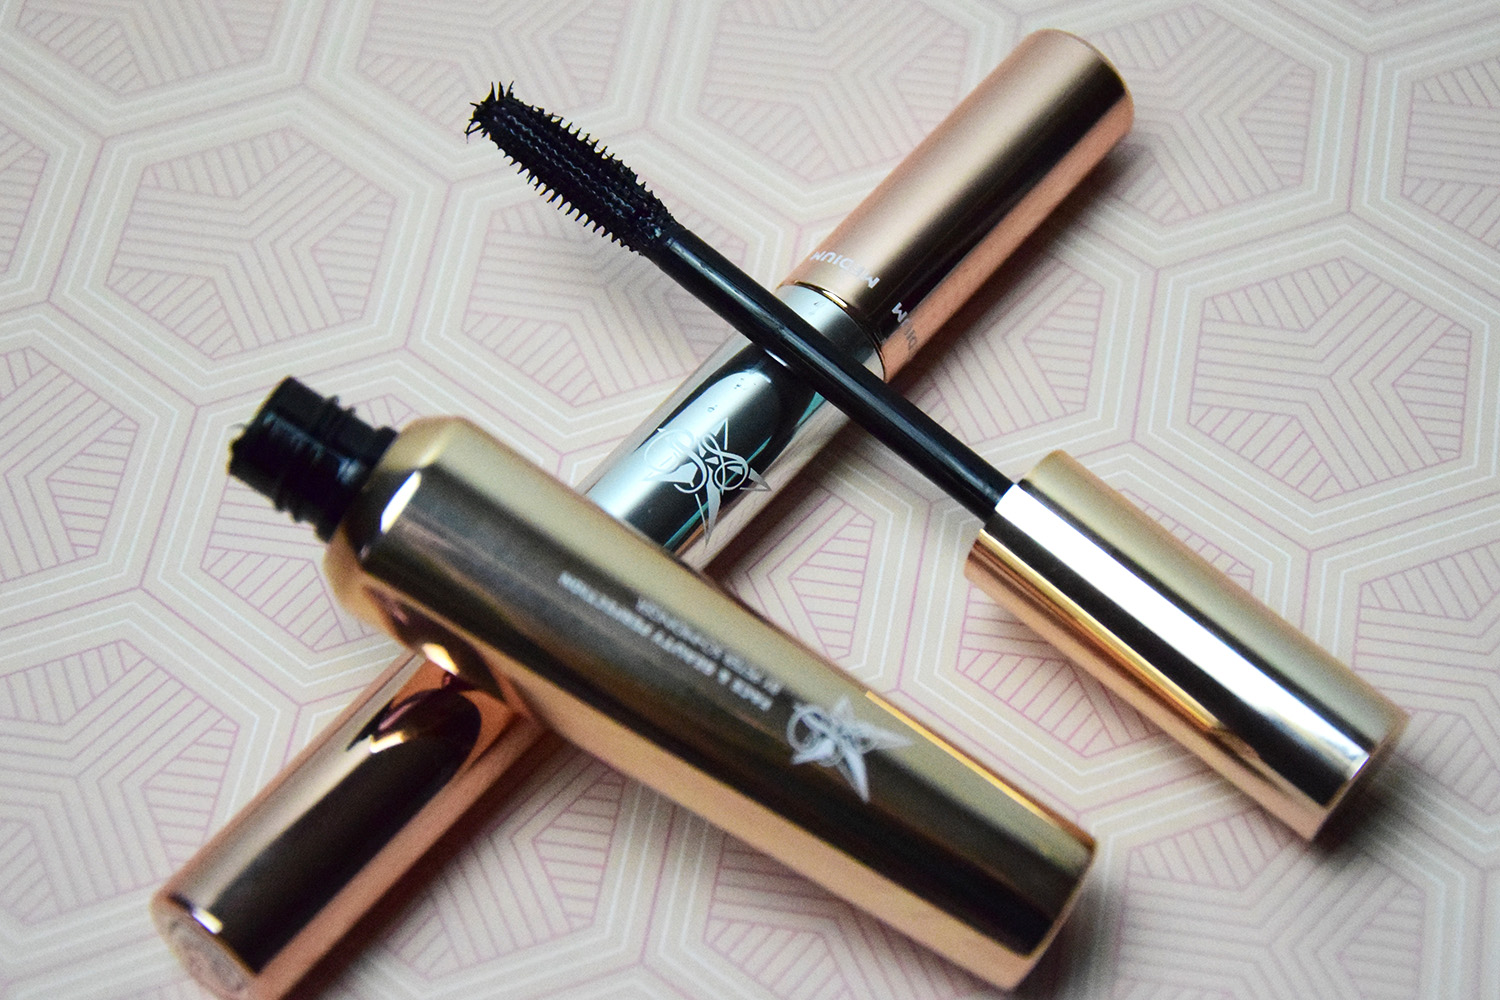 Advanceyourstyle Beautyblog Berlin Mondays Makeup Beauty Face And Beauty By Peter Schmidinger Super Lash Mascara